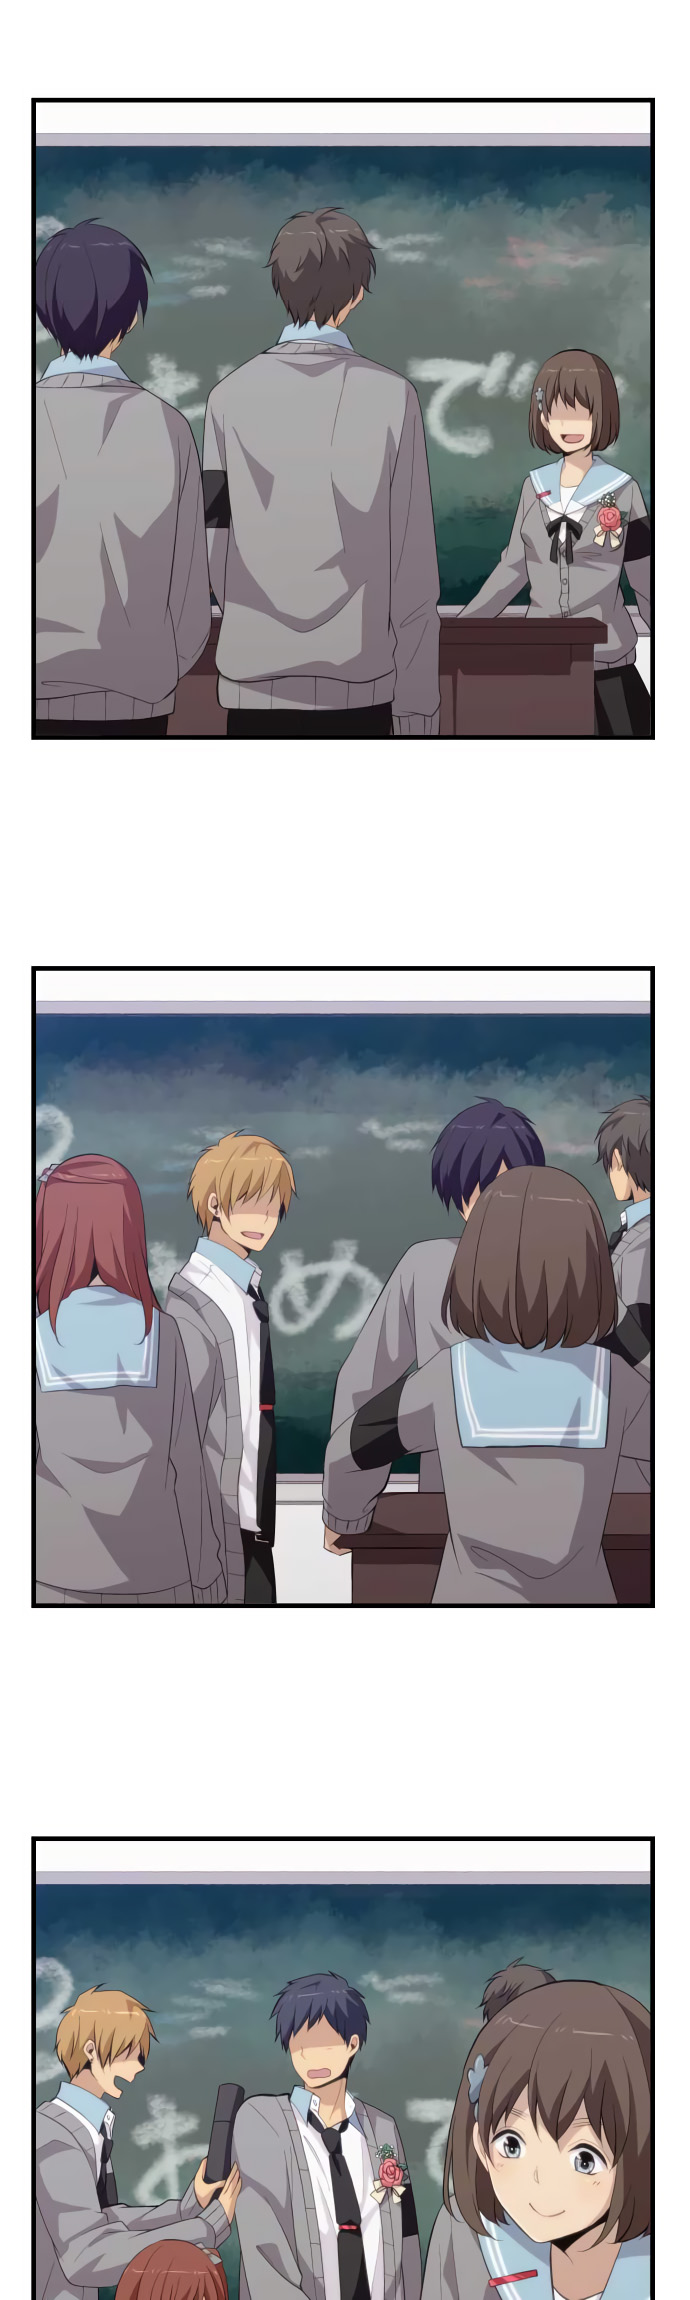 ReLIFE Chapter 212  Online Free Manga Read Image 6